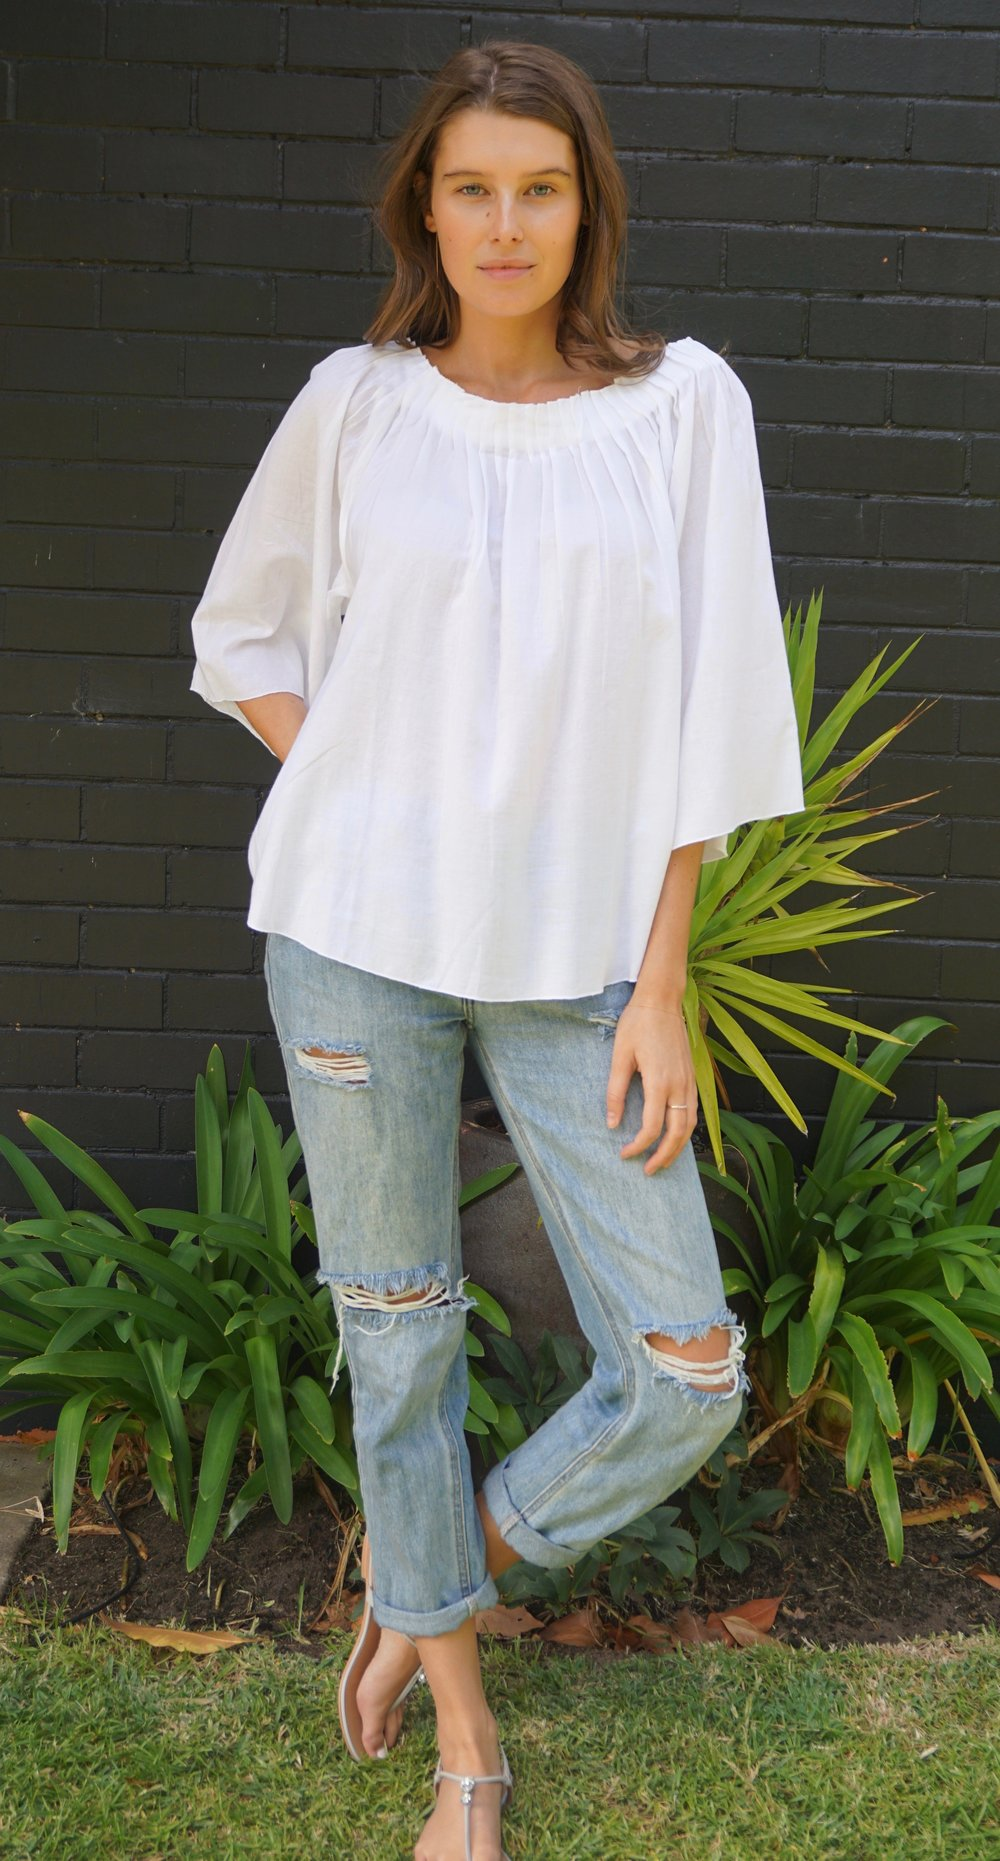 Frejus Top, White Product Code: 11ATWH